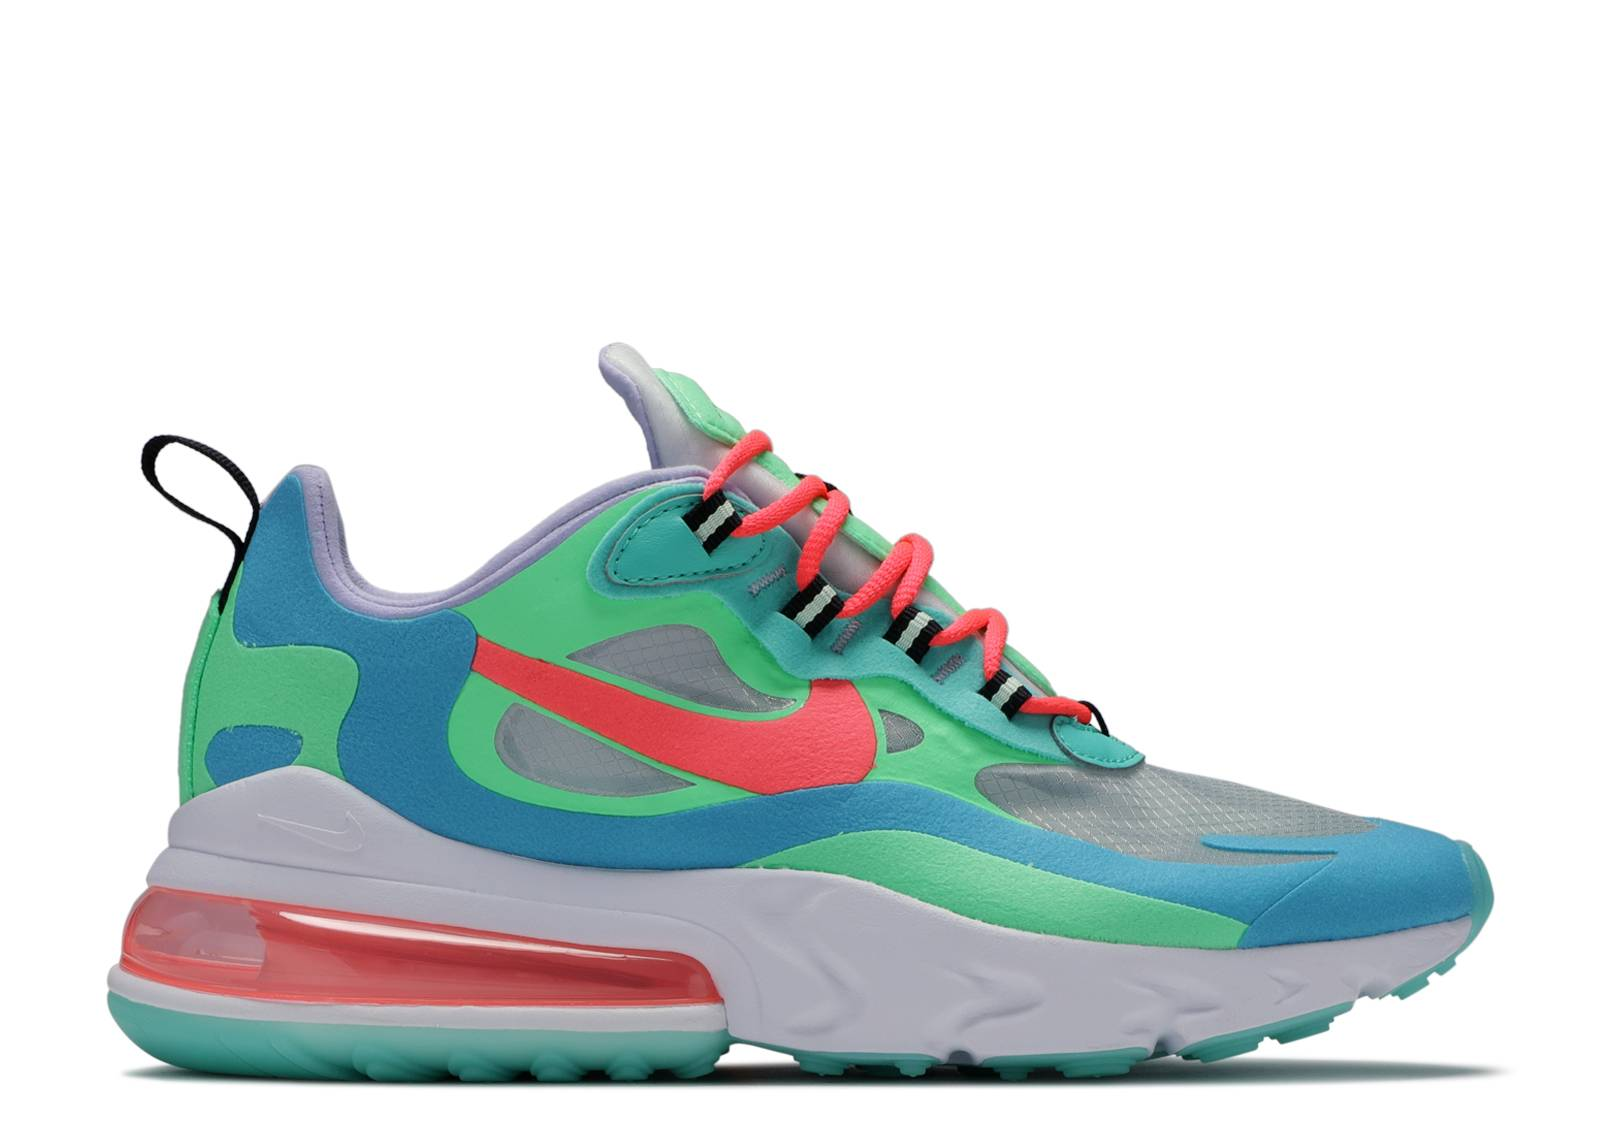 Nike Air Max 270 React Electro Green | AO4971 300 | Backseries